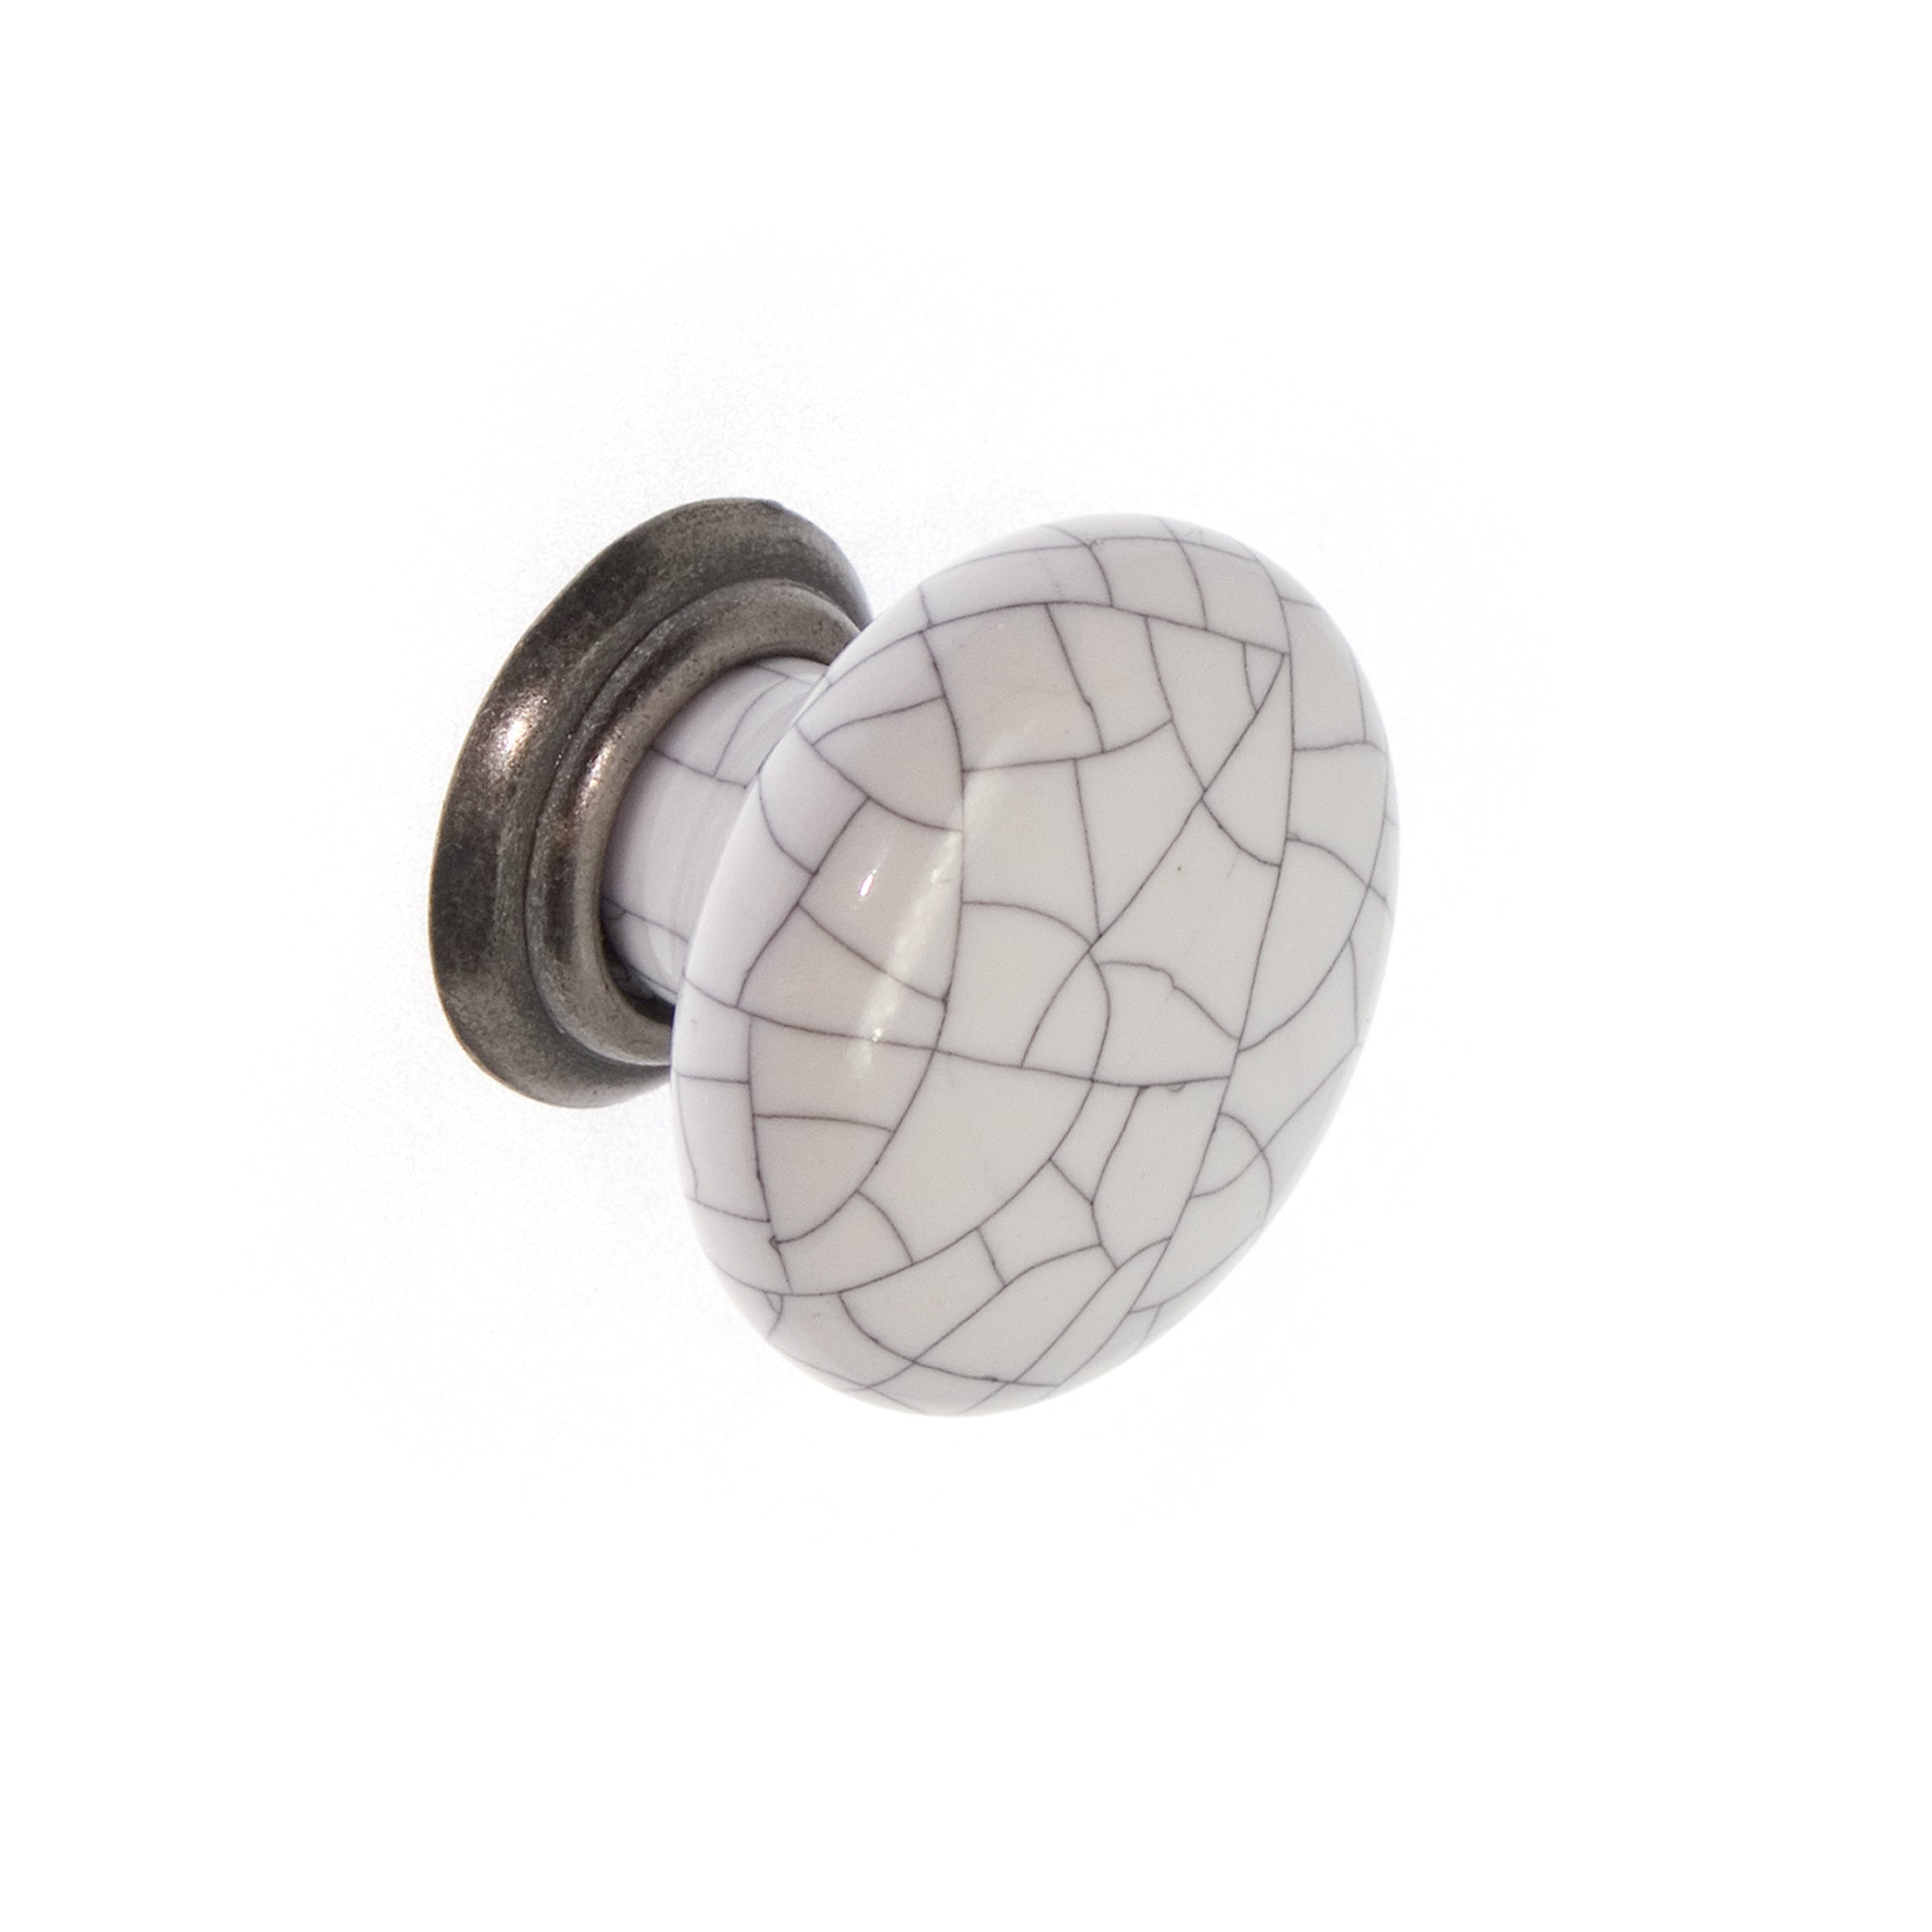 White Crackle Ceramic / Antique Pewter Knob